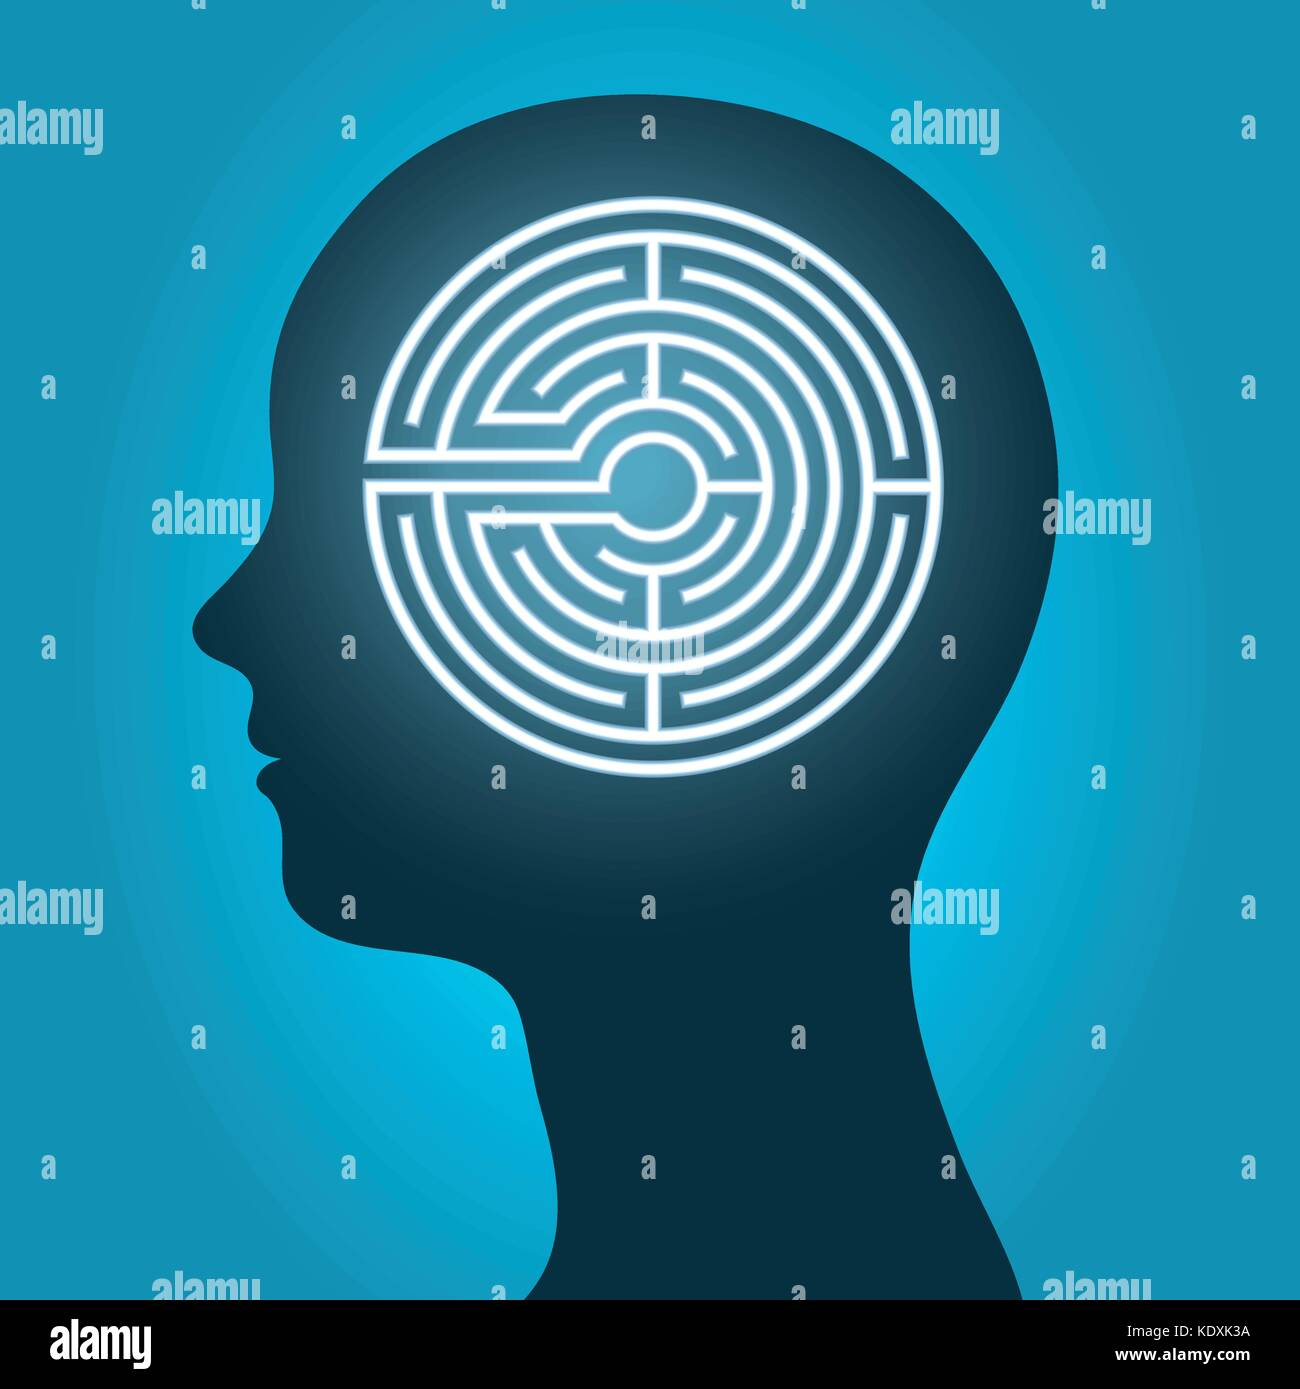 Woman head with mind maze, labyrinth depicting meditation. Vector illustration. - Stock Vector